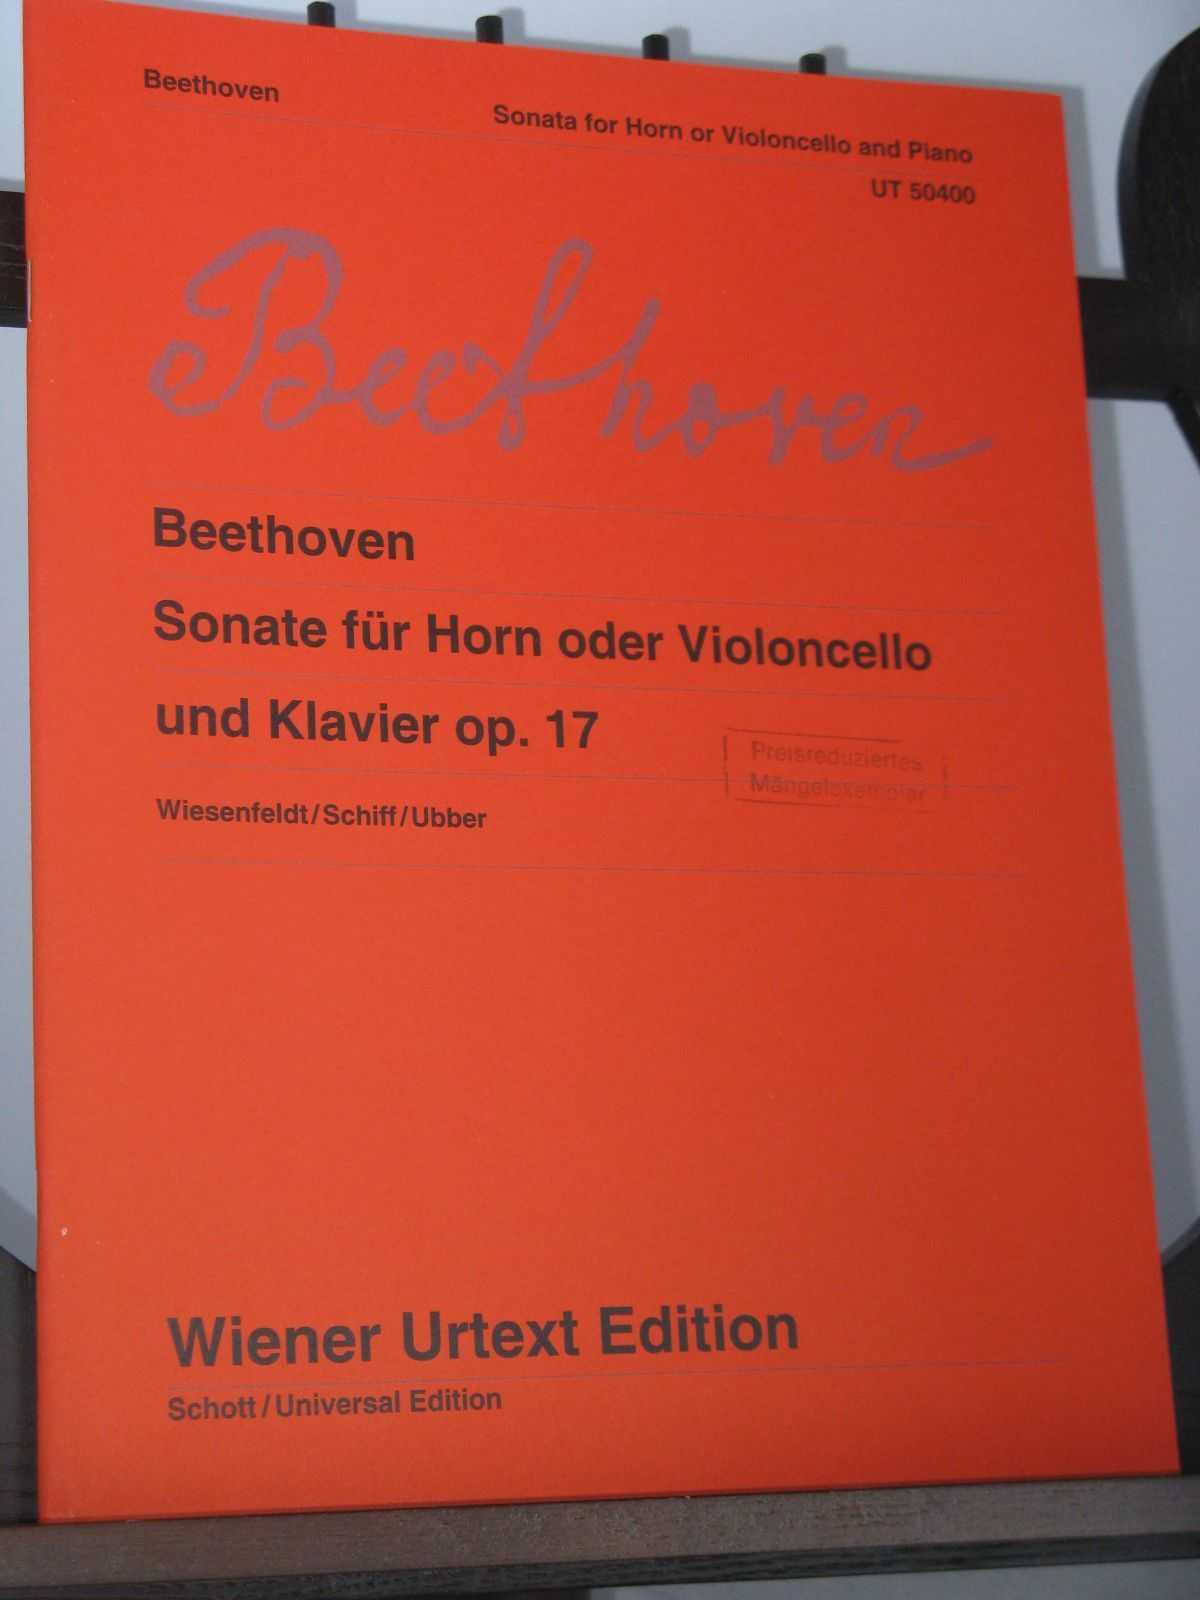 Beethoven L van - Sonata Op 17 for Horn (or Cello) & Piano